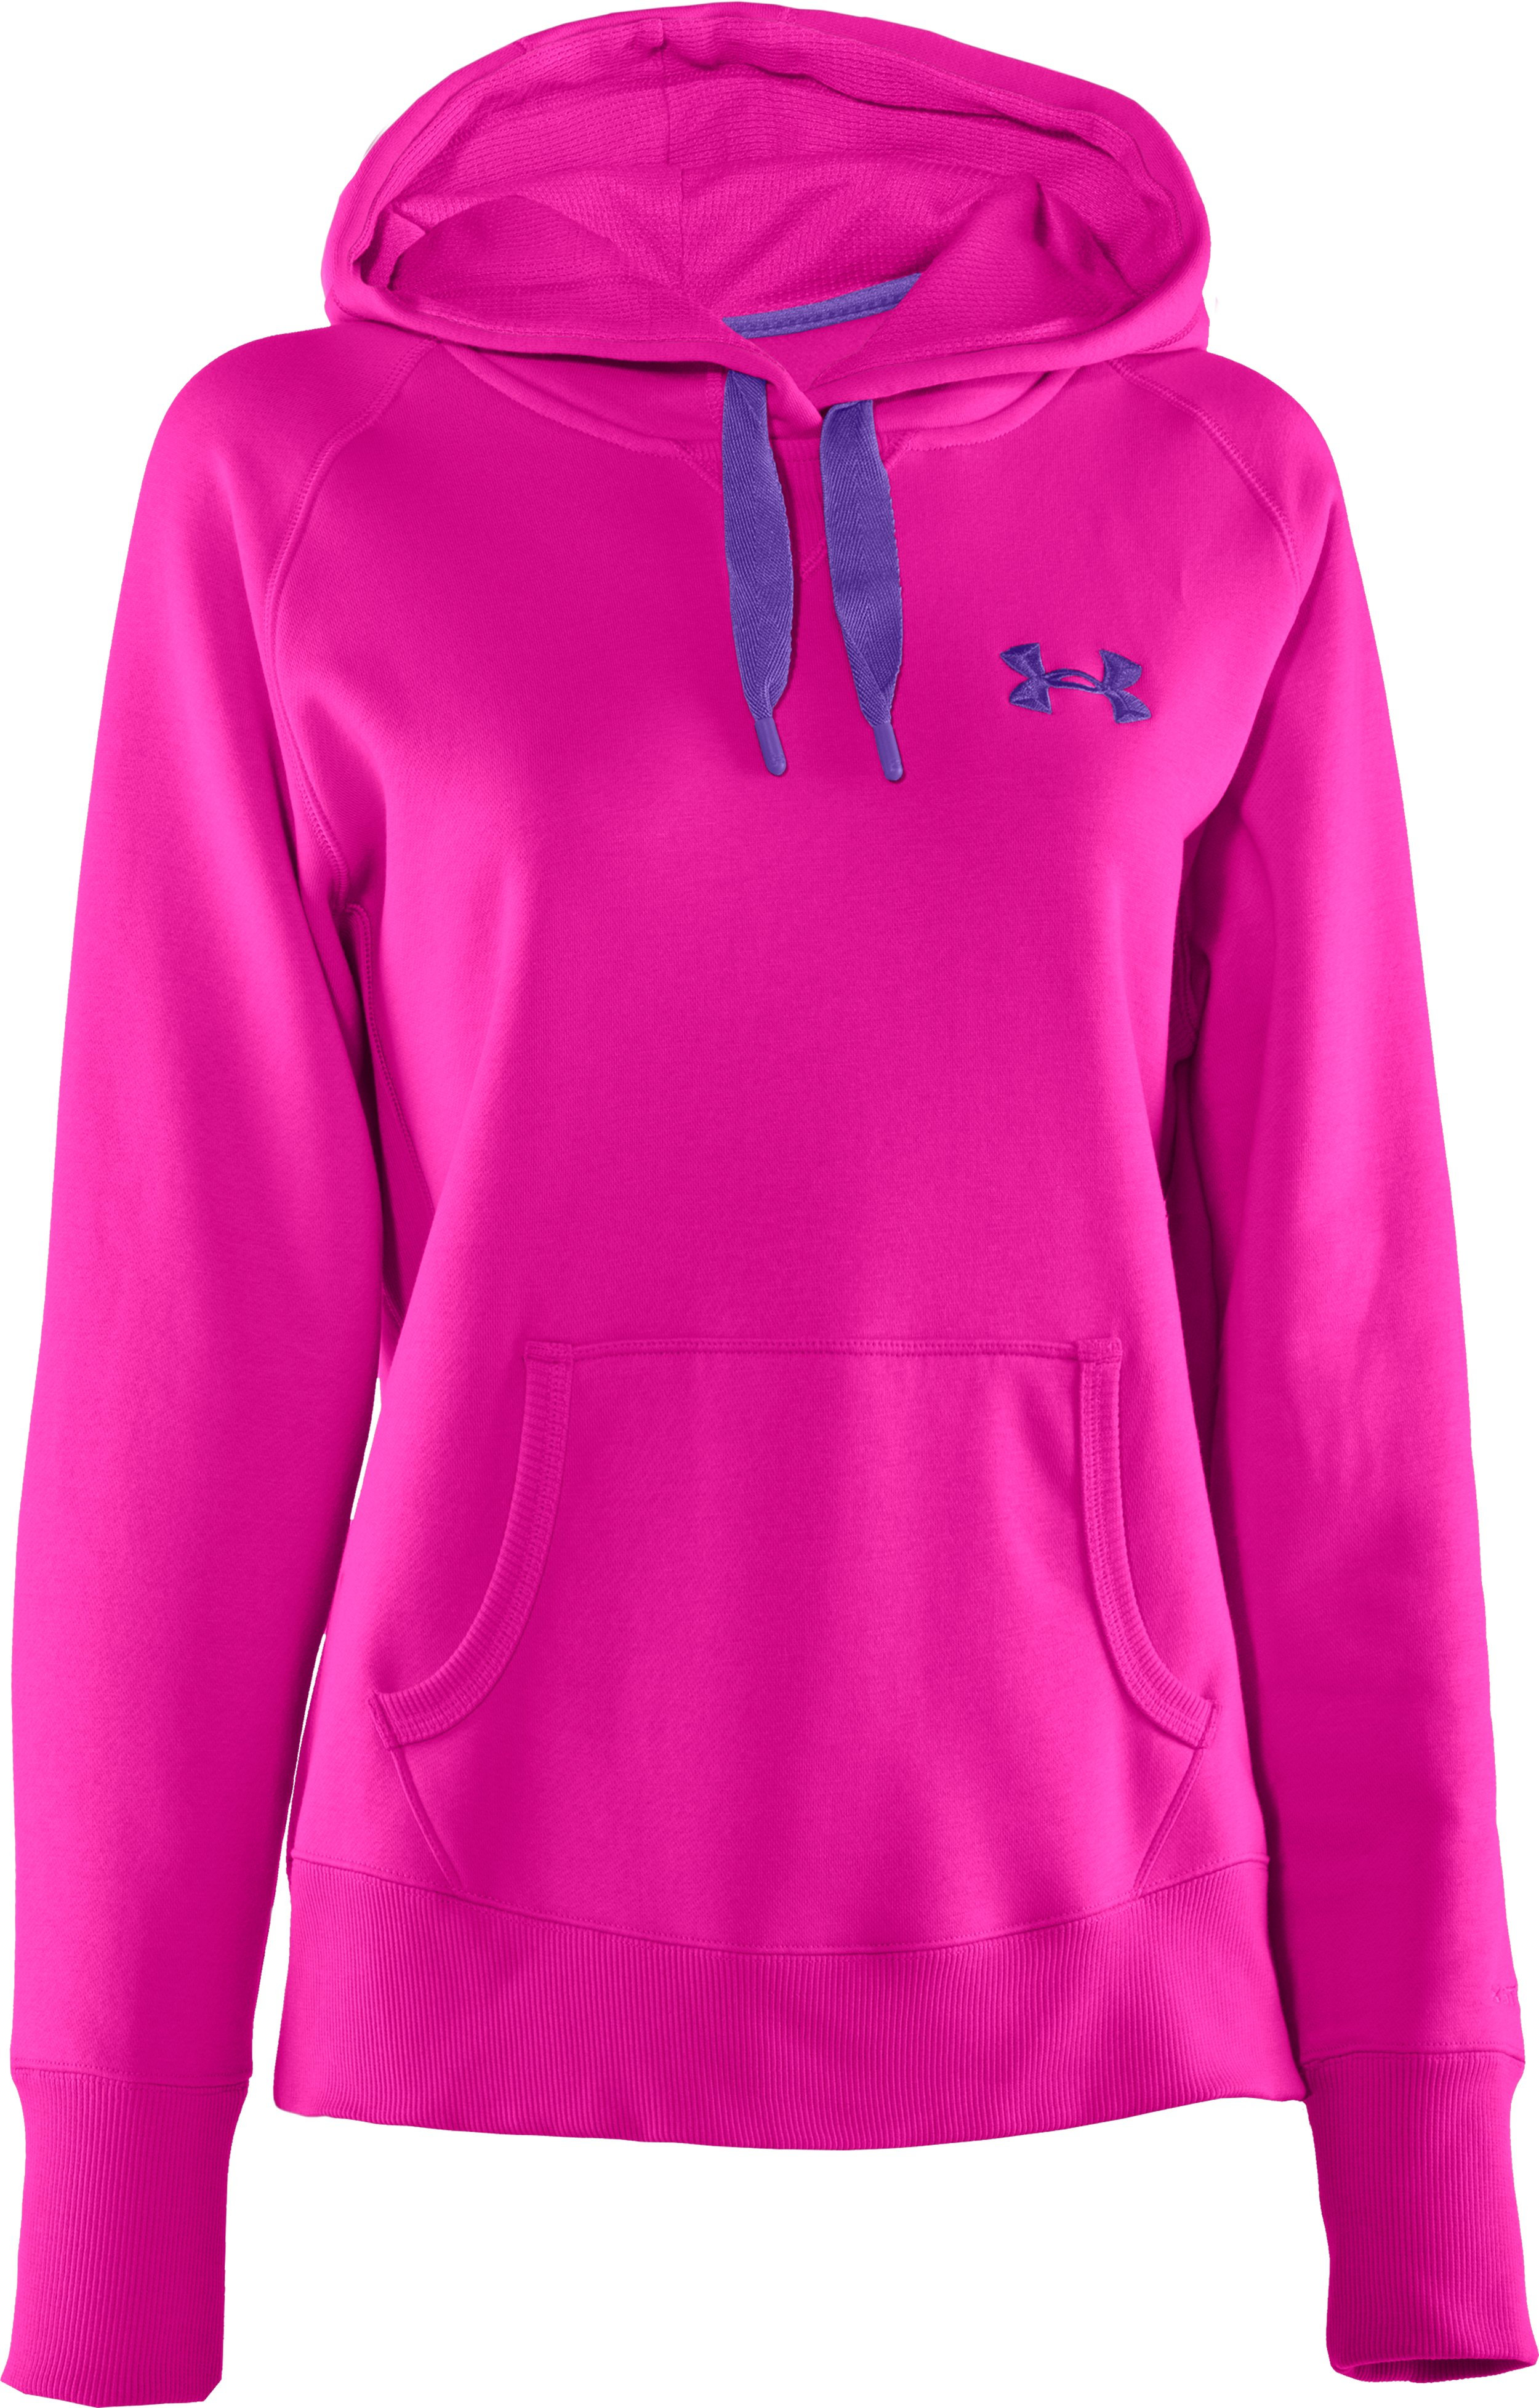 Women's Charged Cotton® Storm Hoodie, Tropic Pink